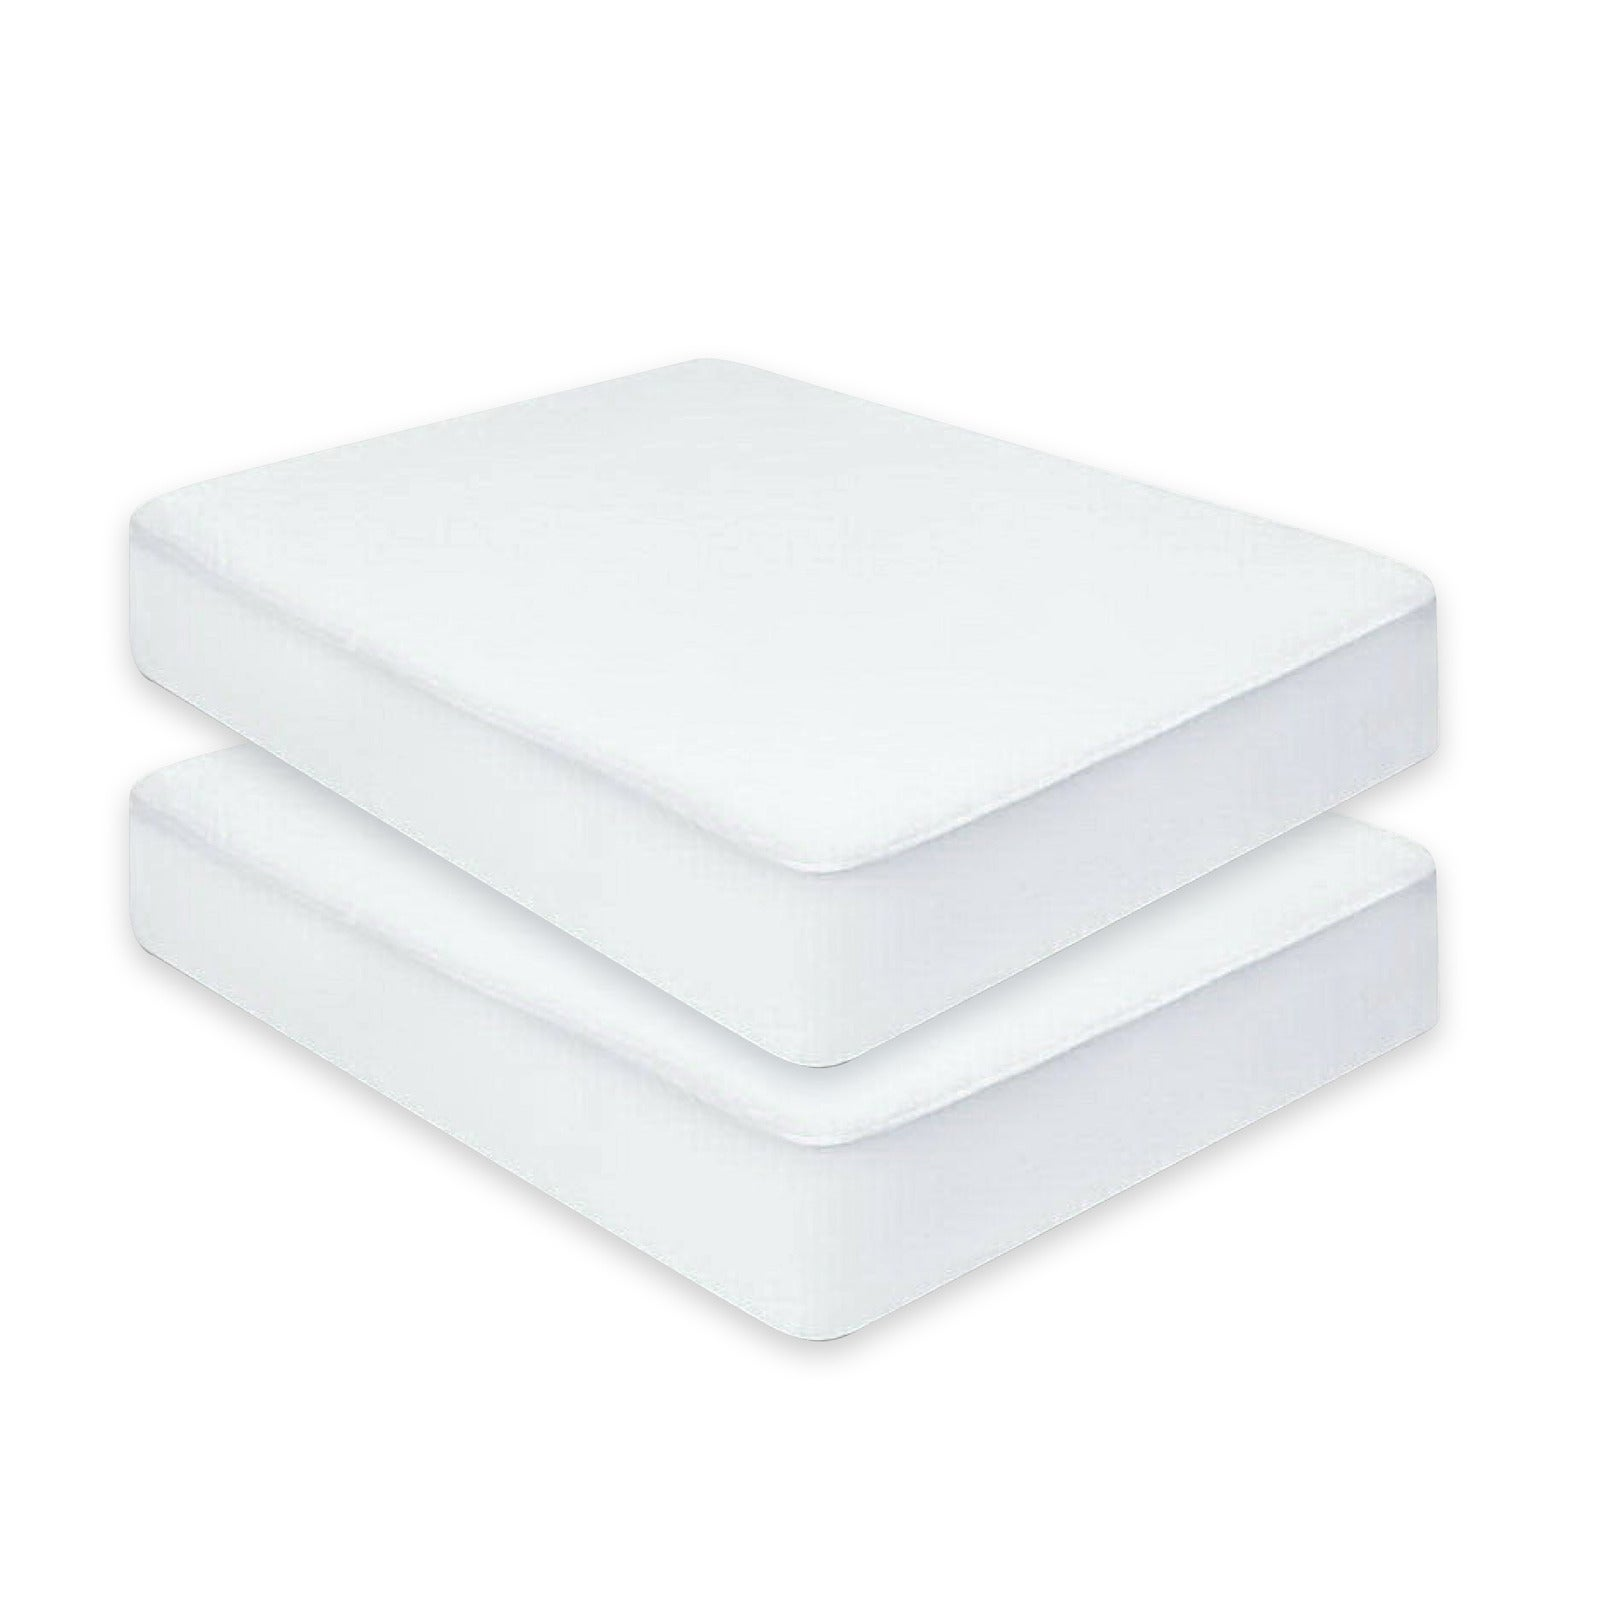 Home Master® 2PCE Mattress Protector King Size Elastic Fit 195 x 200cm